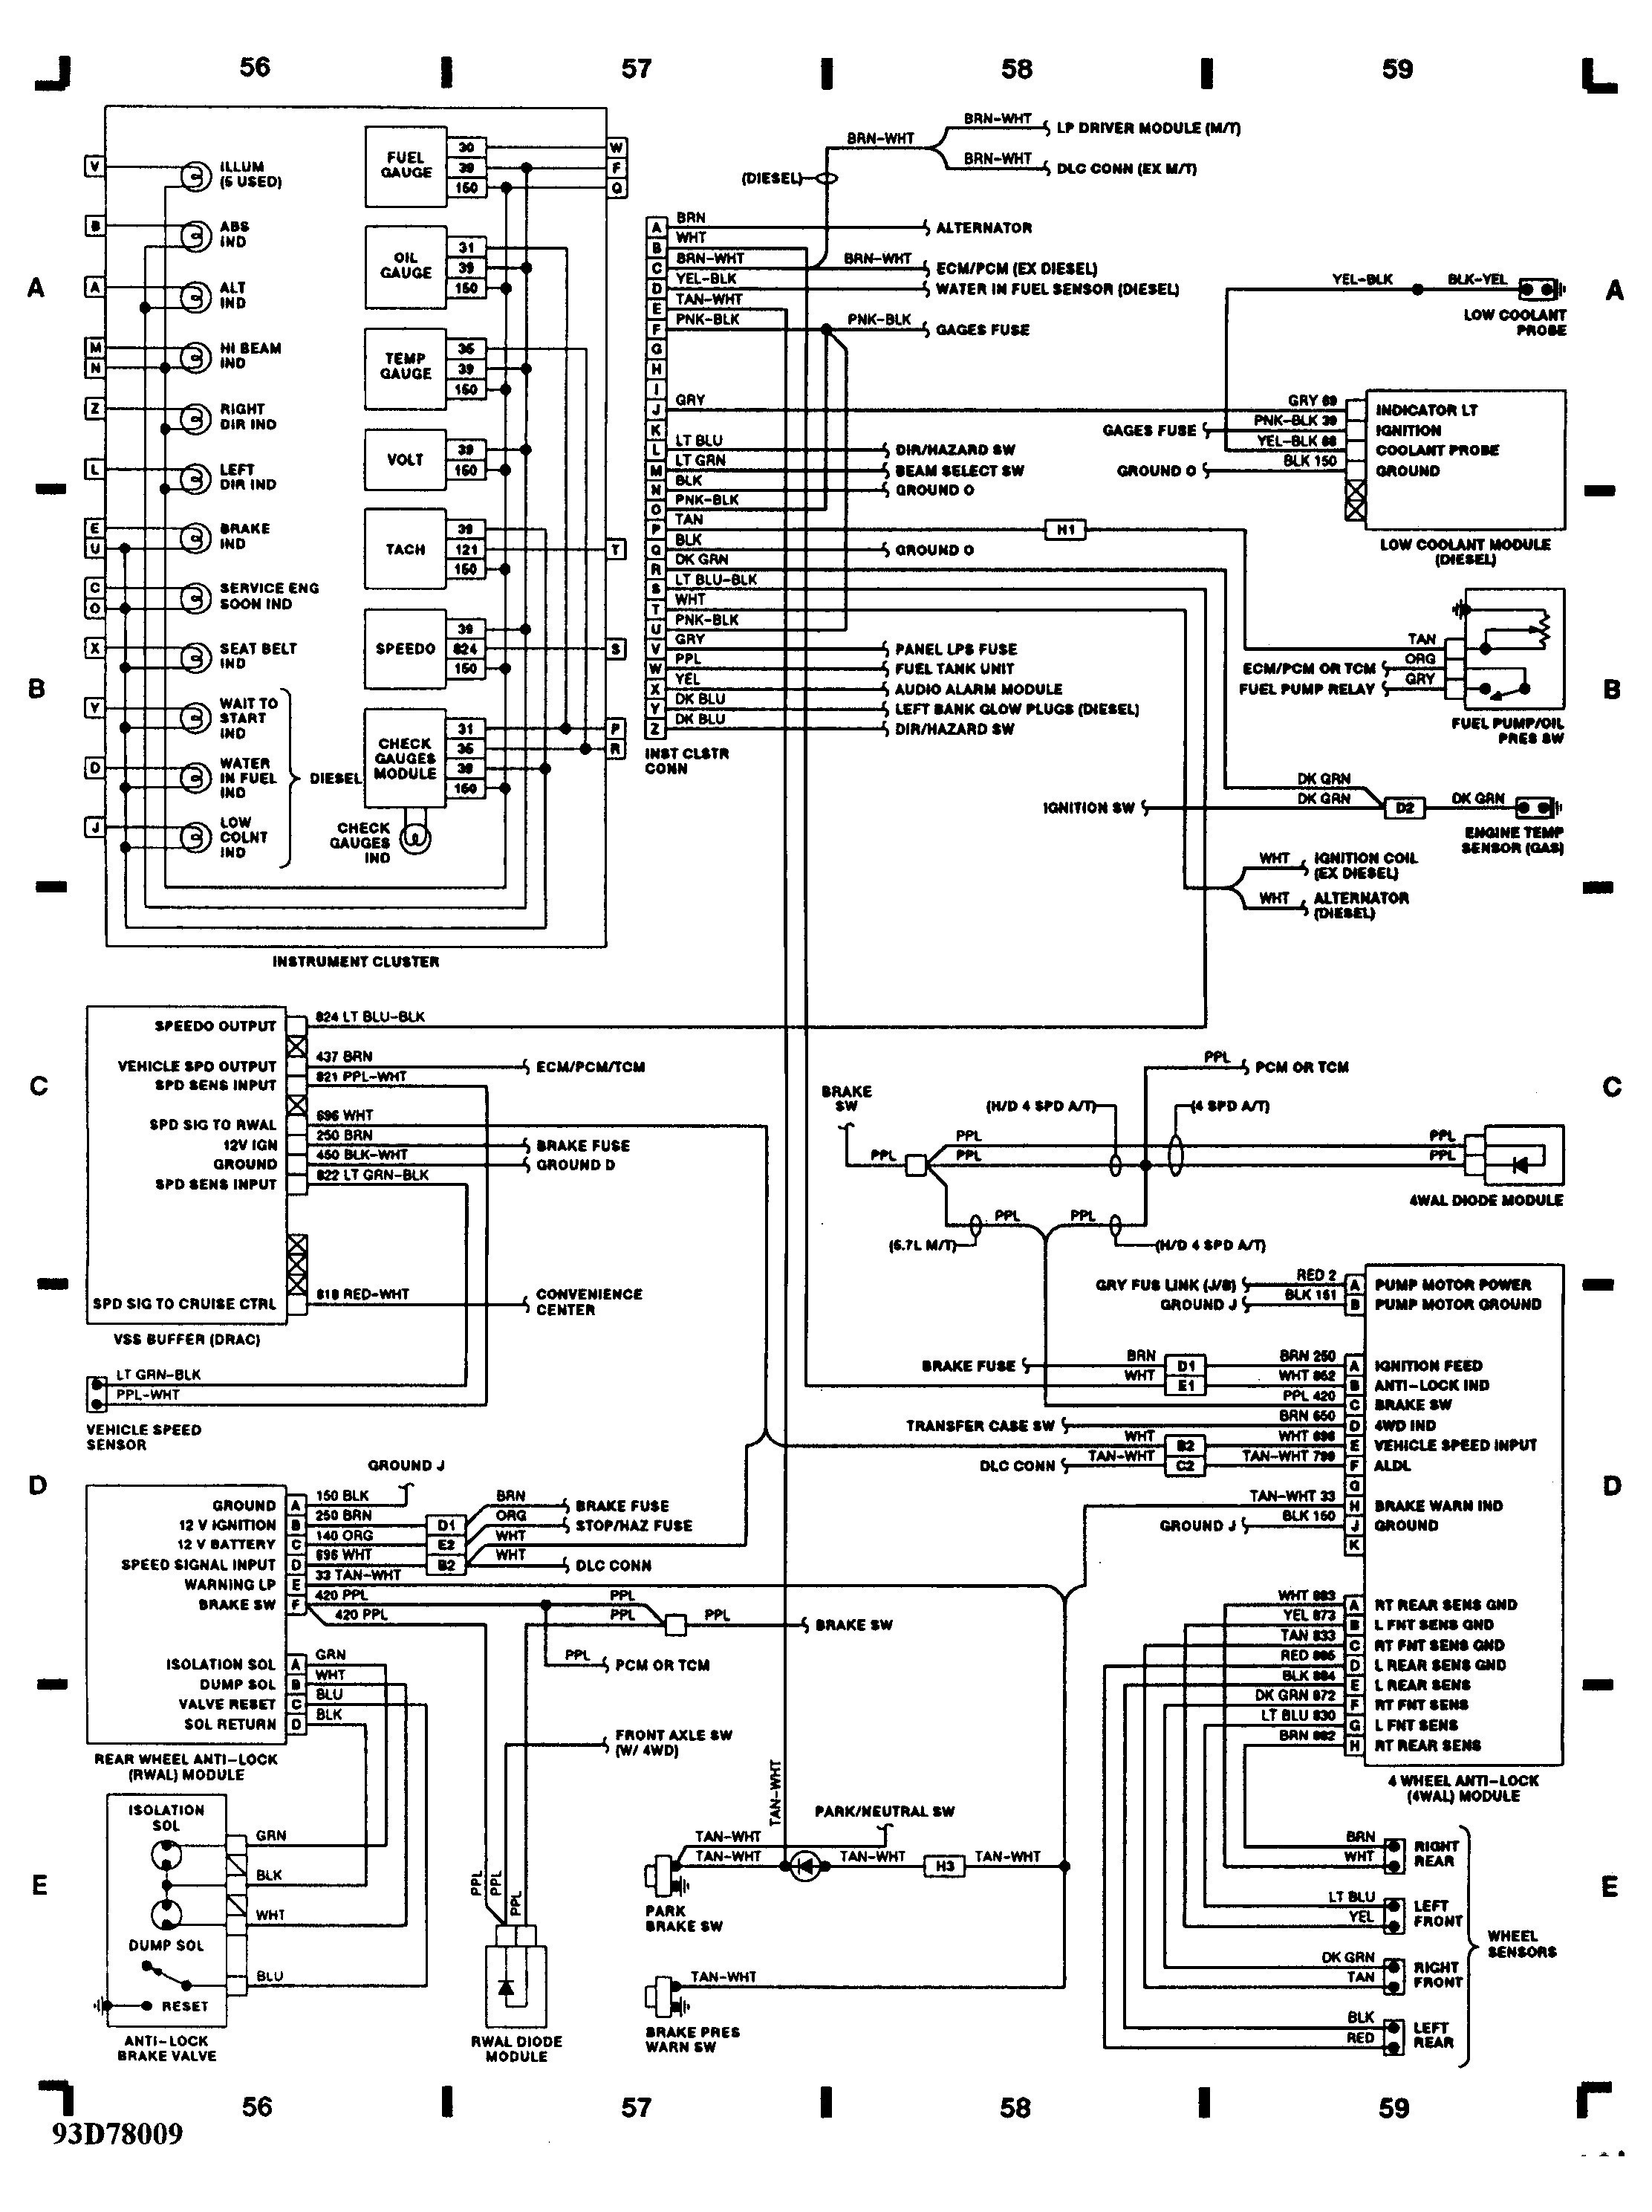 98 Bravada Wiring Diagram Well Detailed Diagrams U2022 Rh Flyvpn Co 2002  Oldsmobile Radio Intrigue: